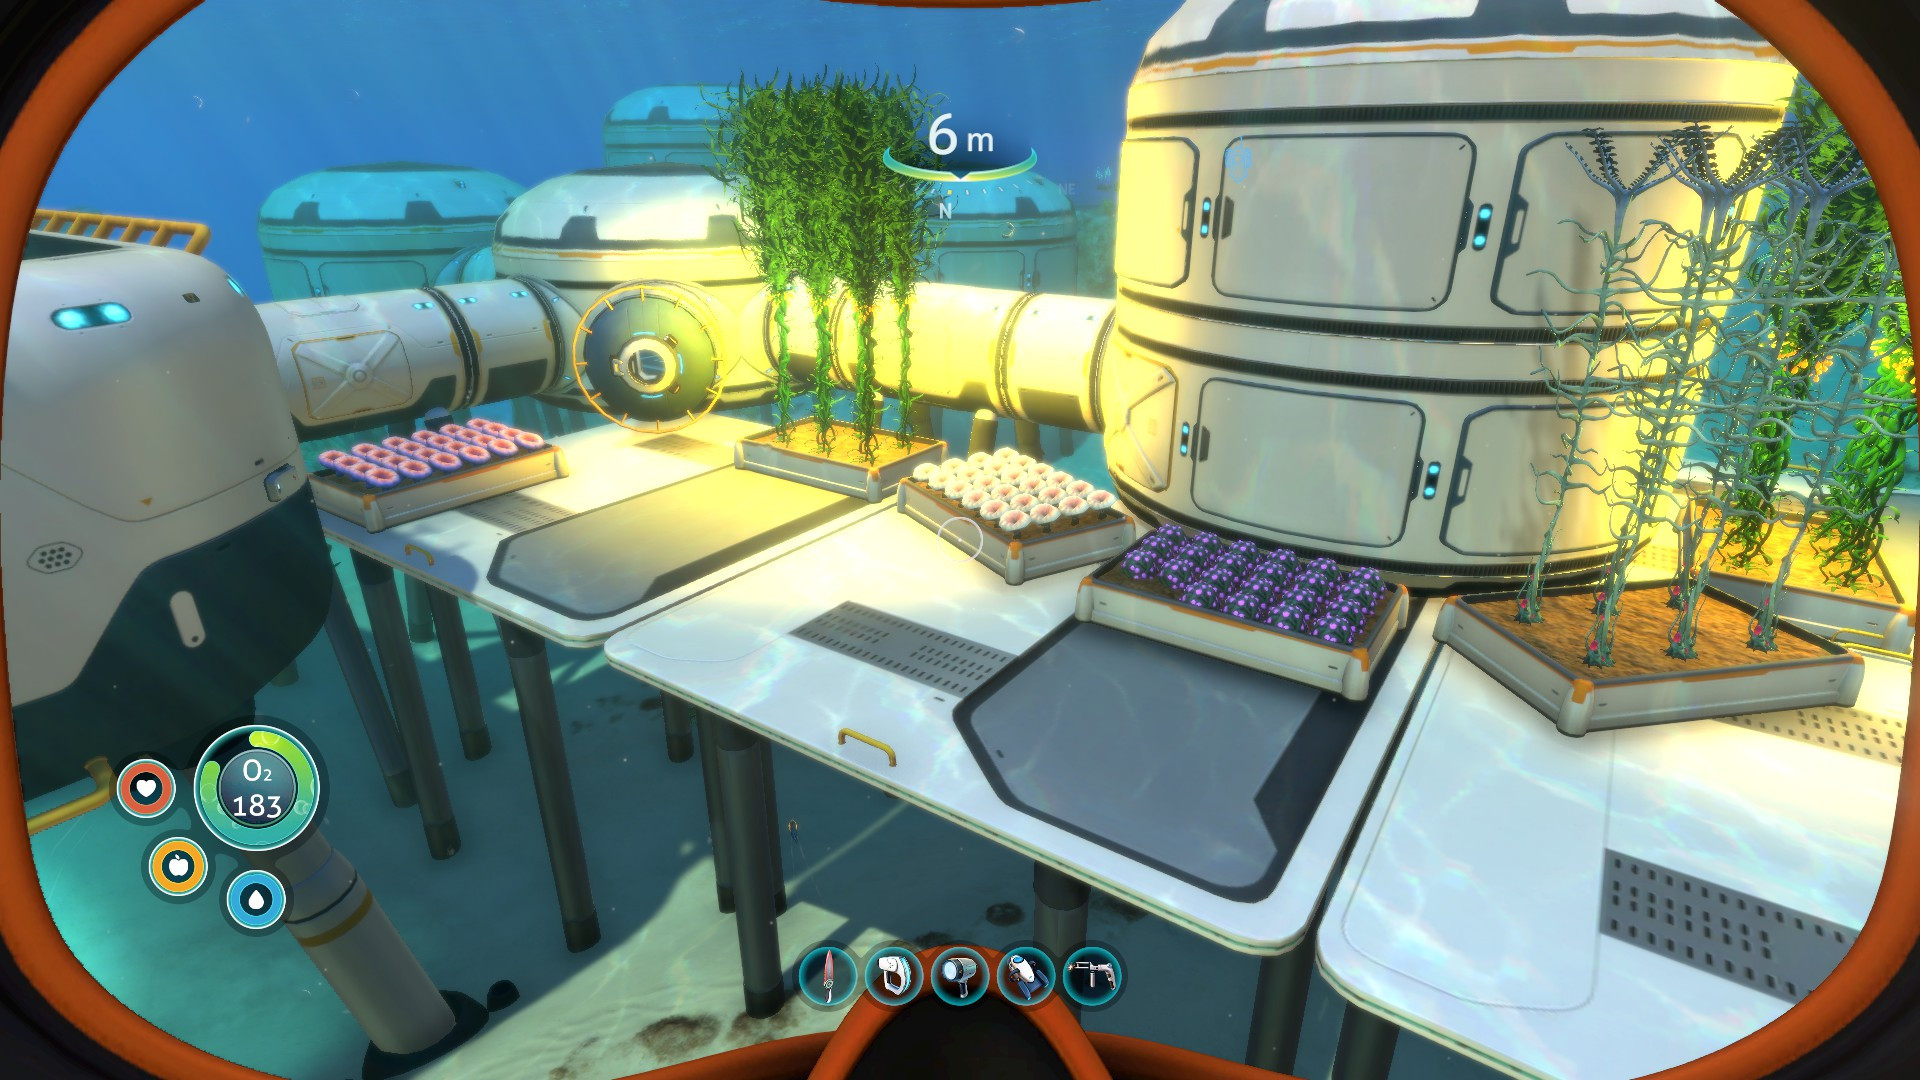 Subnautica Trophy Guide Psnprofiles Com All of coupon codes are verified and tested today! subnautica trophy guide psnprofiles com